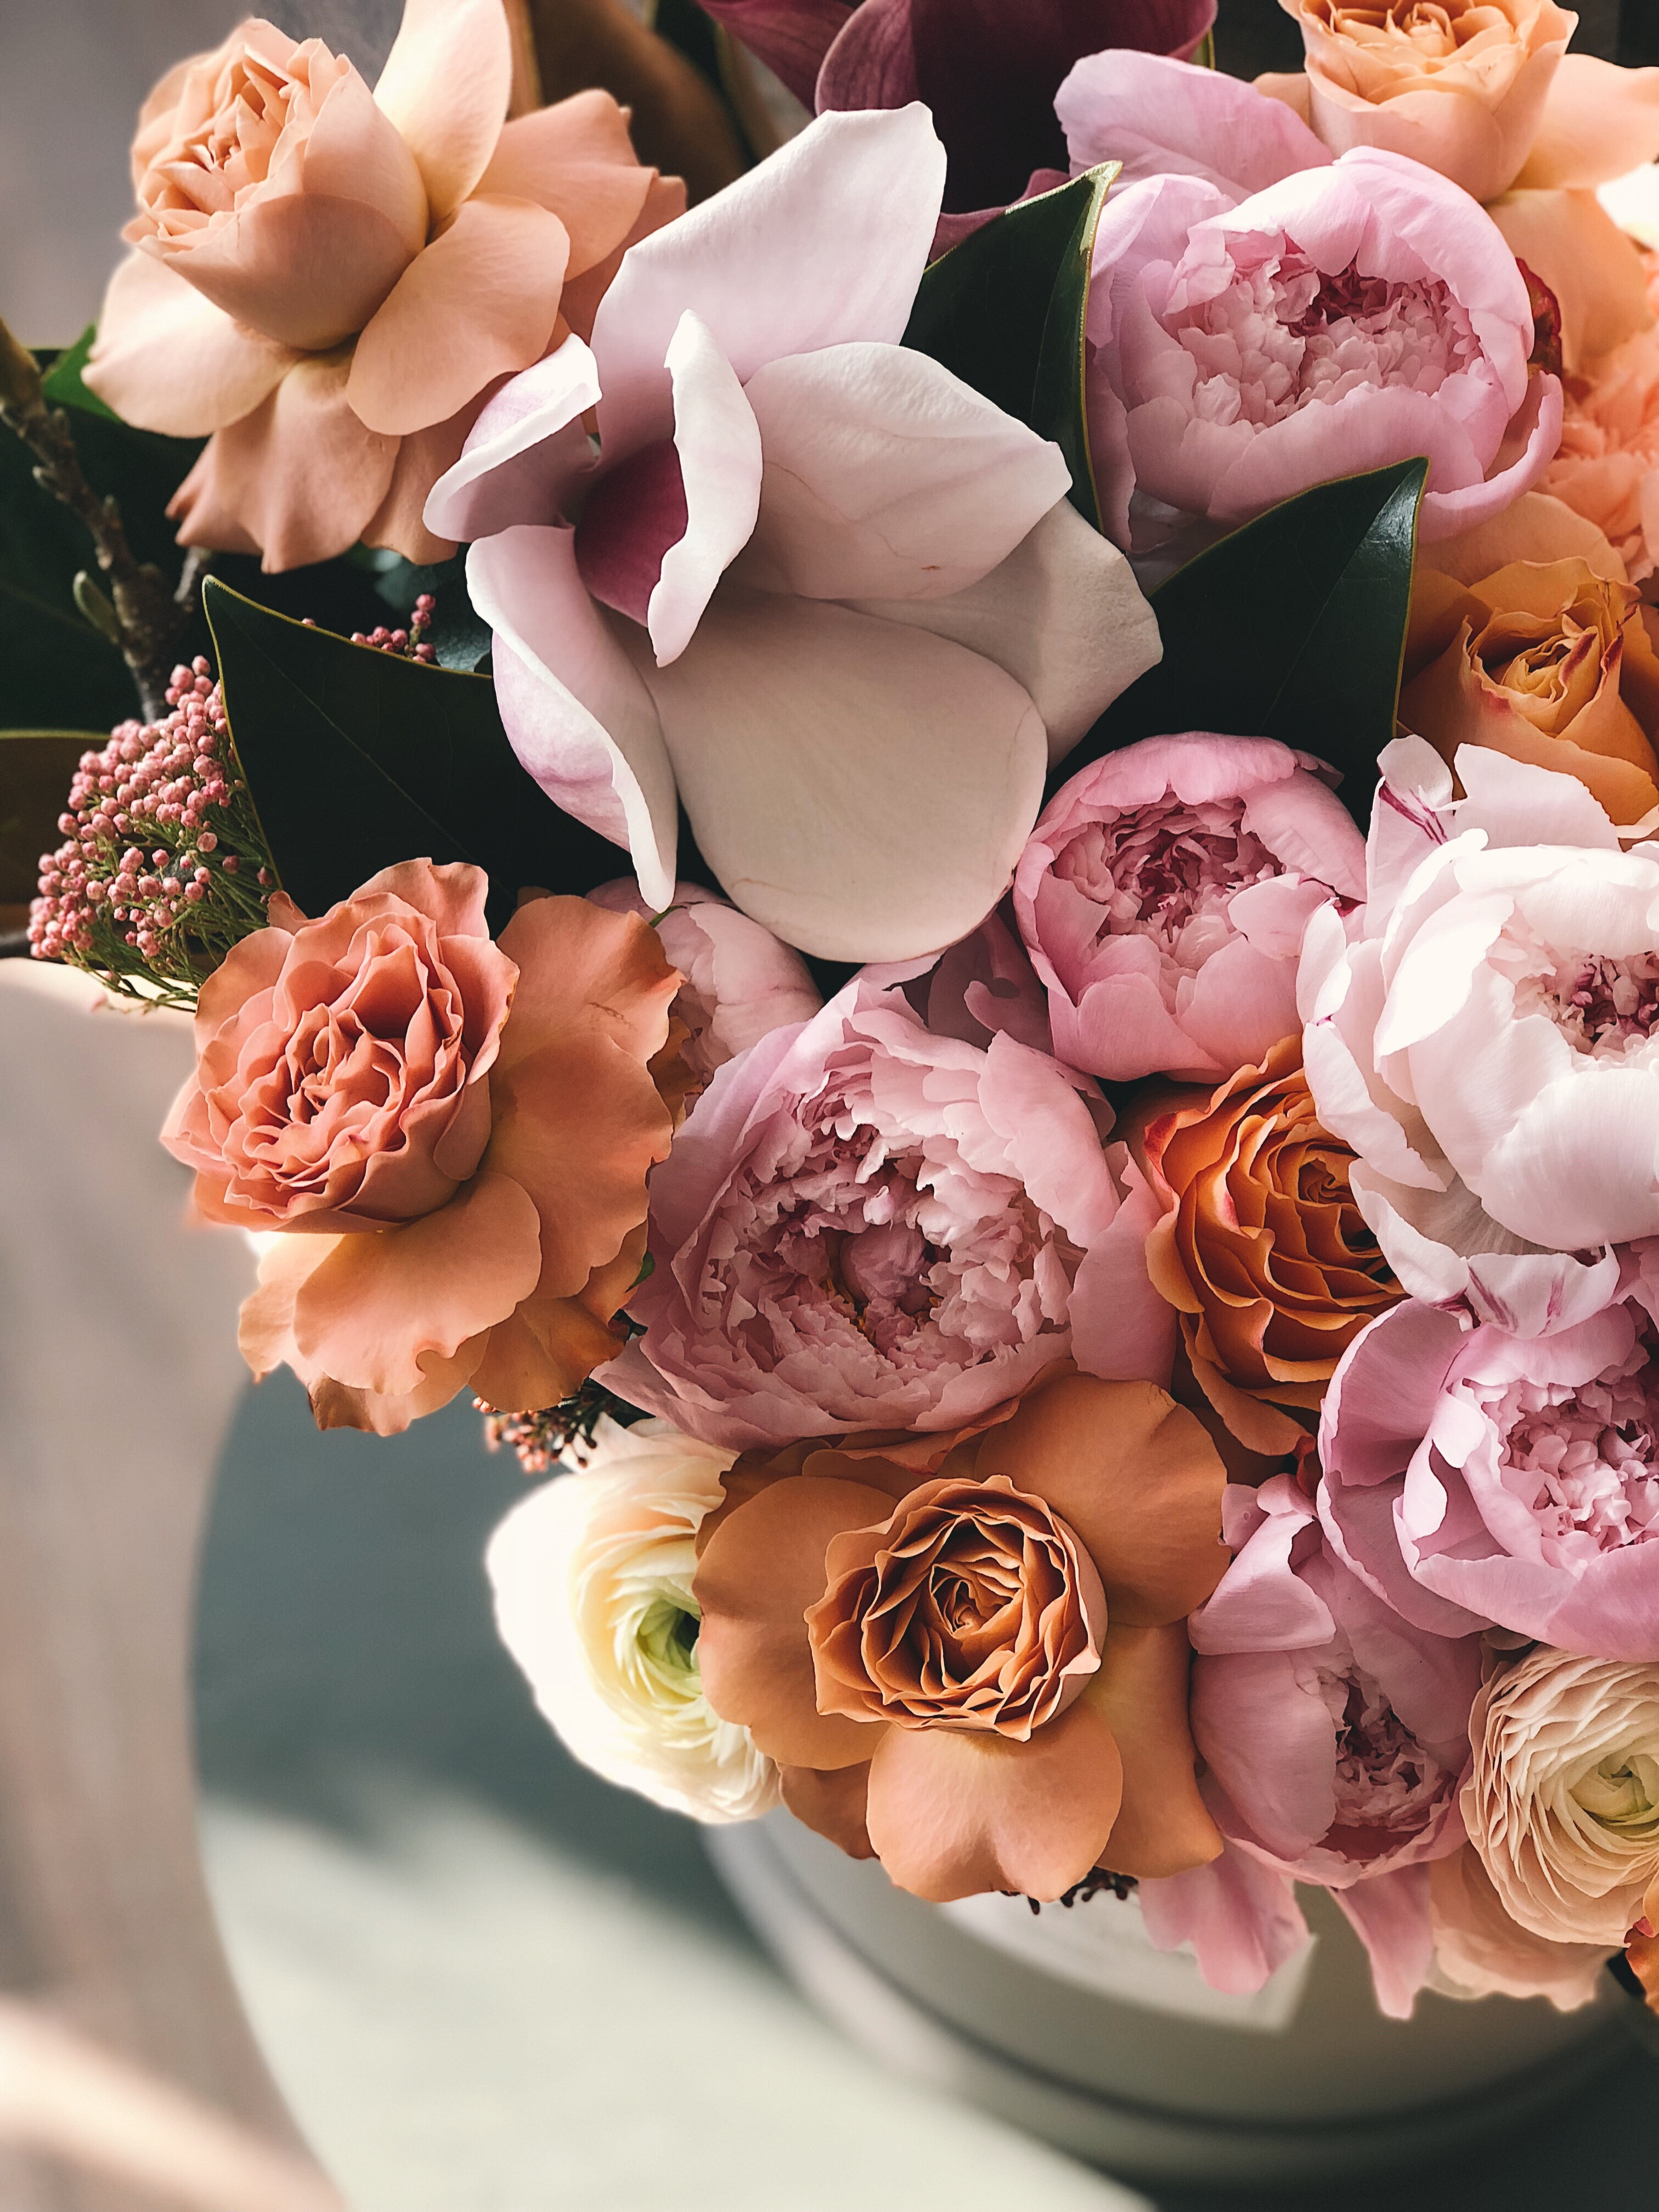 White, brown, and purple petaled flowers photo